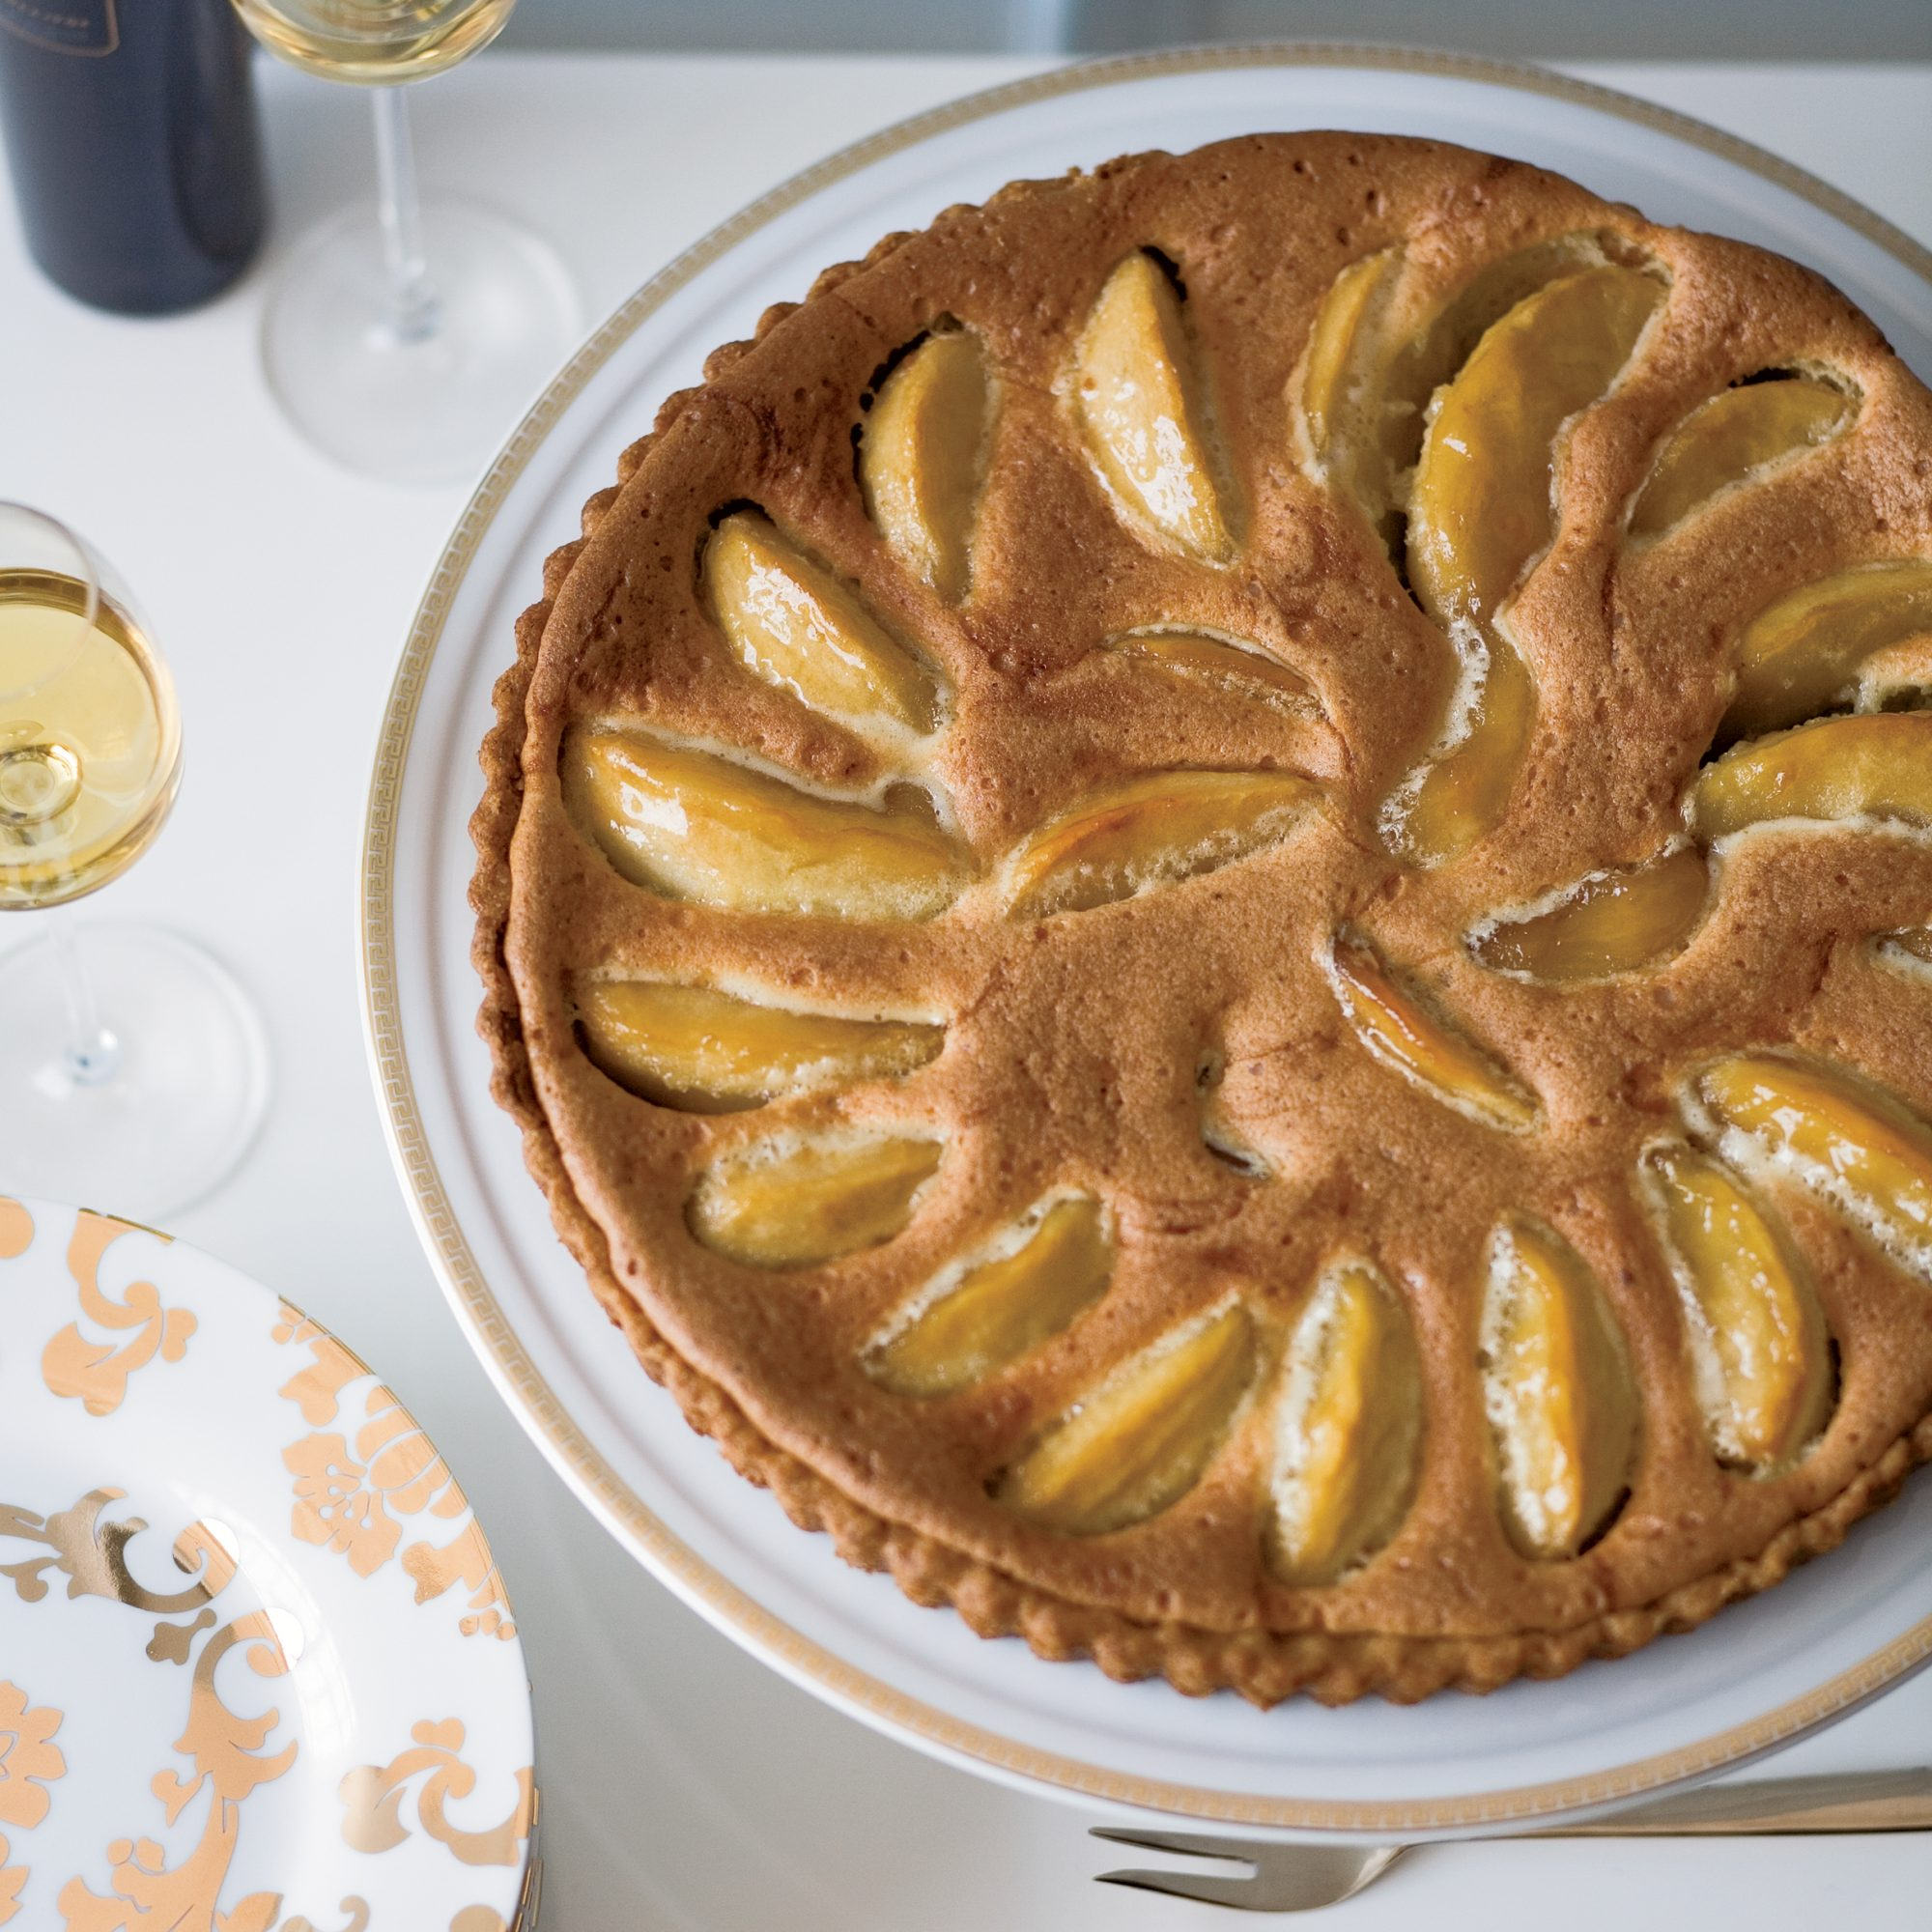 3 Wines to Pair with Apple Pie